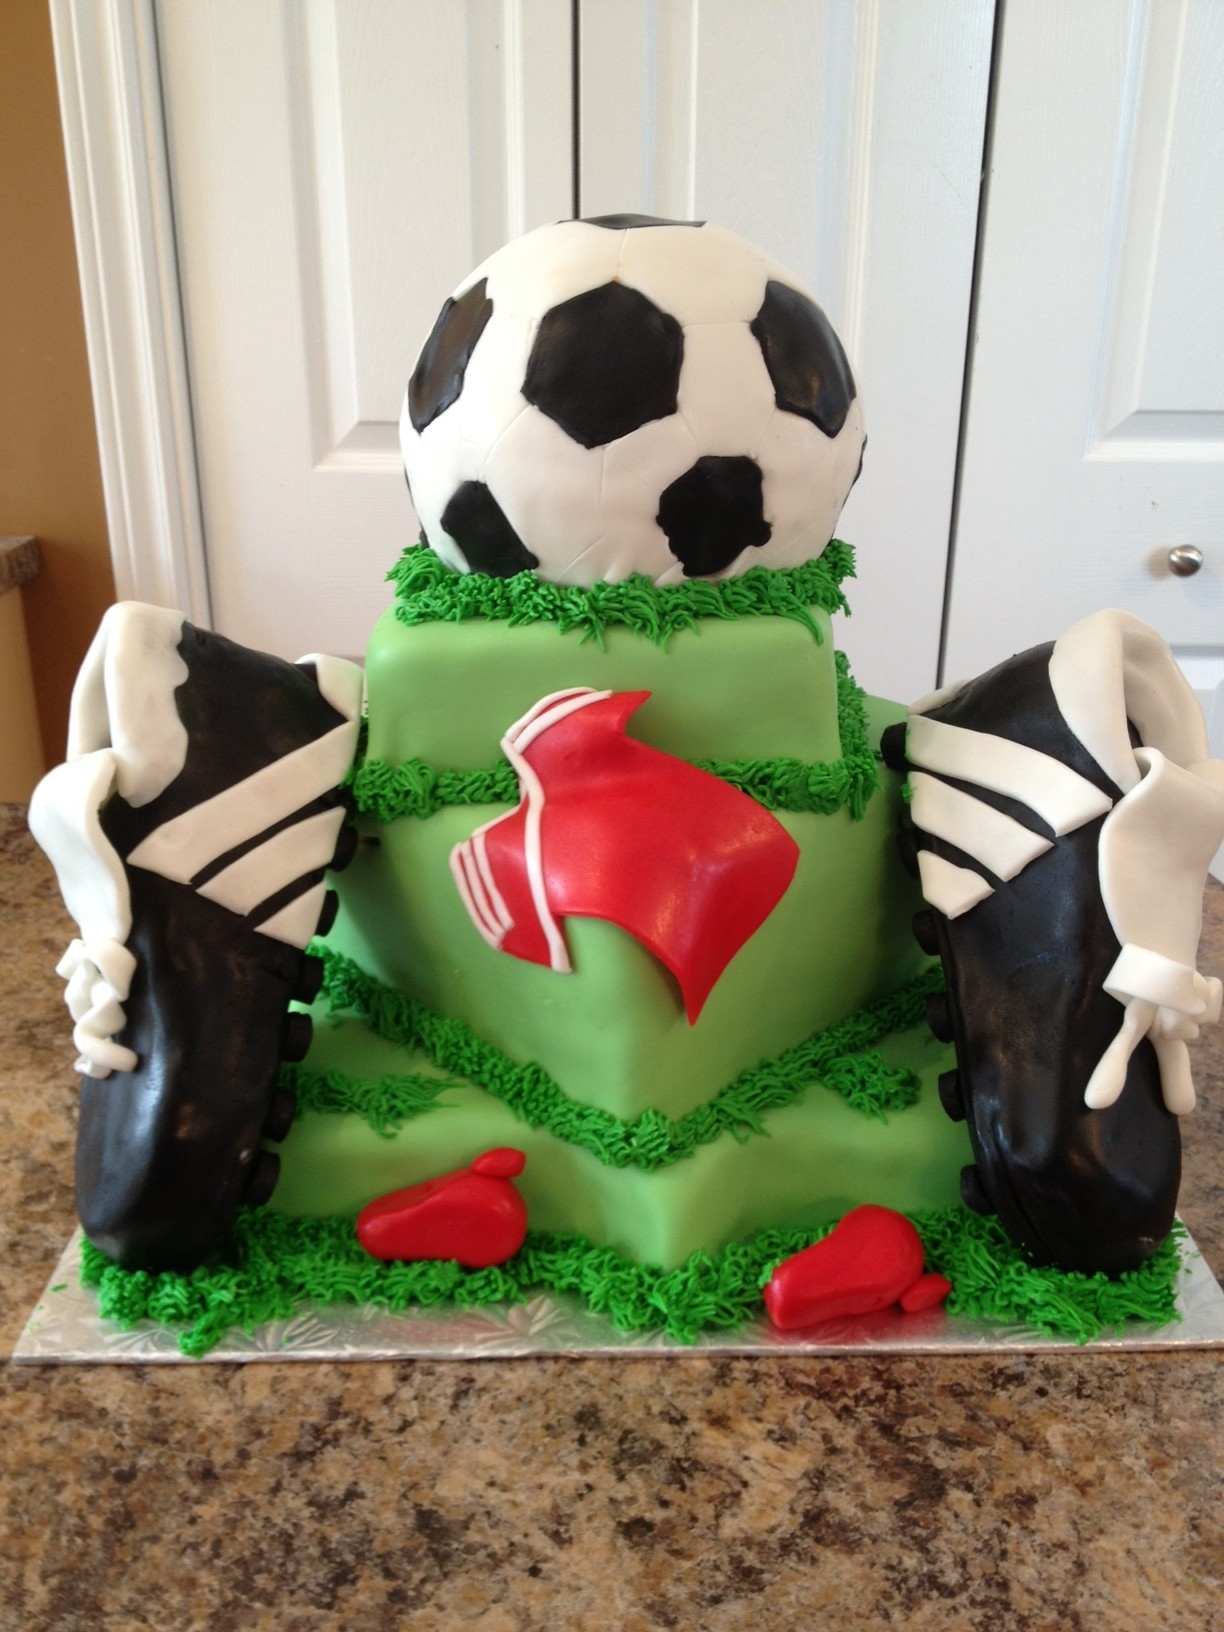 A cake I made for a gala supporting one of our local soccer teams going to Nationals. This was the centerpiece of their auction gala and went for over $1000! Cake is vanilla covered in buttercream fondant and accents are fondant an dbttercream. Cleats are RCT covered in BC and Fondnat